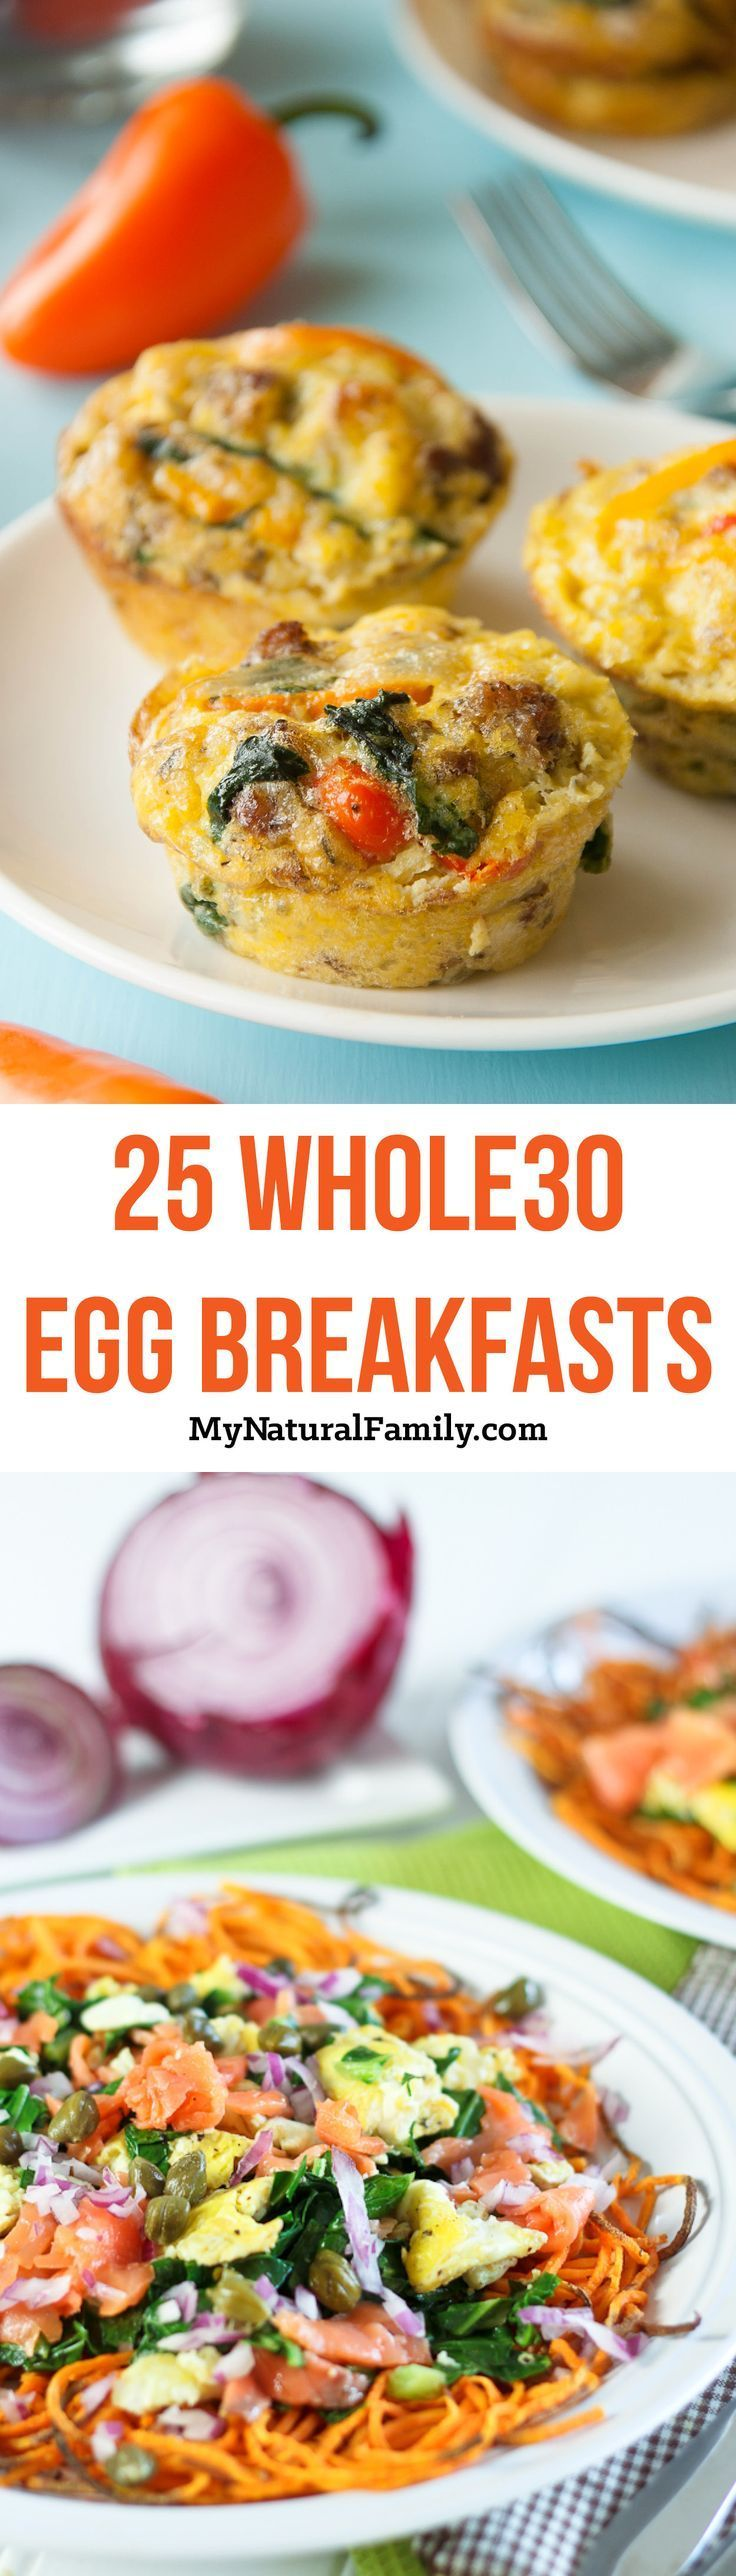 I'm in love with the selection of these Whole30 breakfast recipes with eggs because I'm so sick of plain eggs and these all have images and a link to get the recipe so i can find some new recipes I'm not sick of.